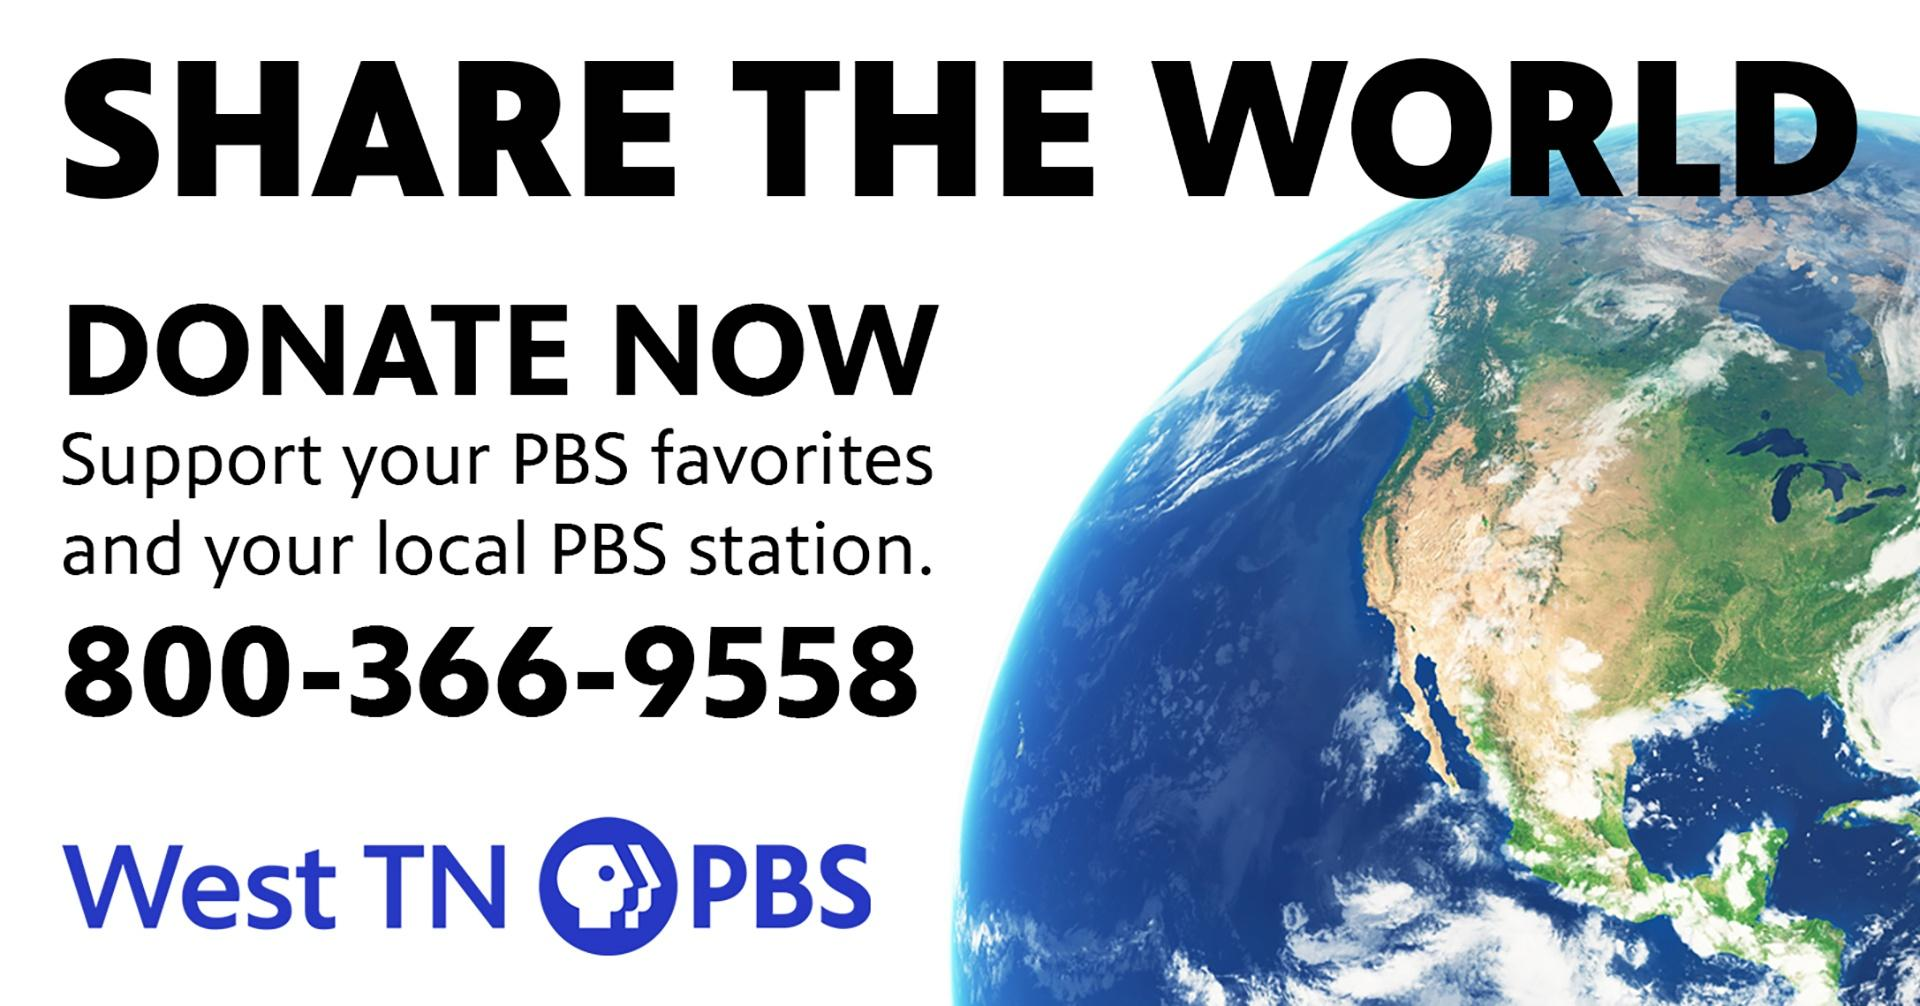 Support your local PBS station